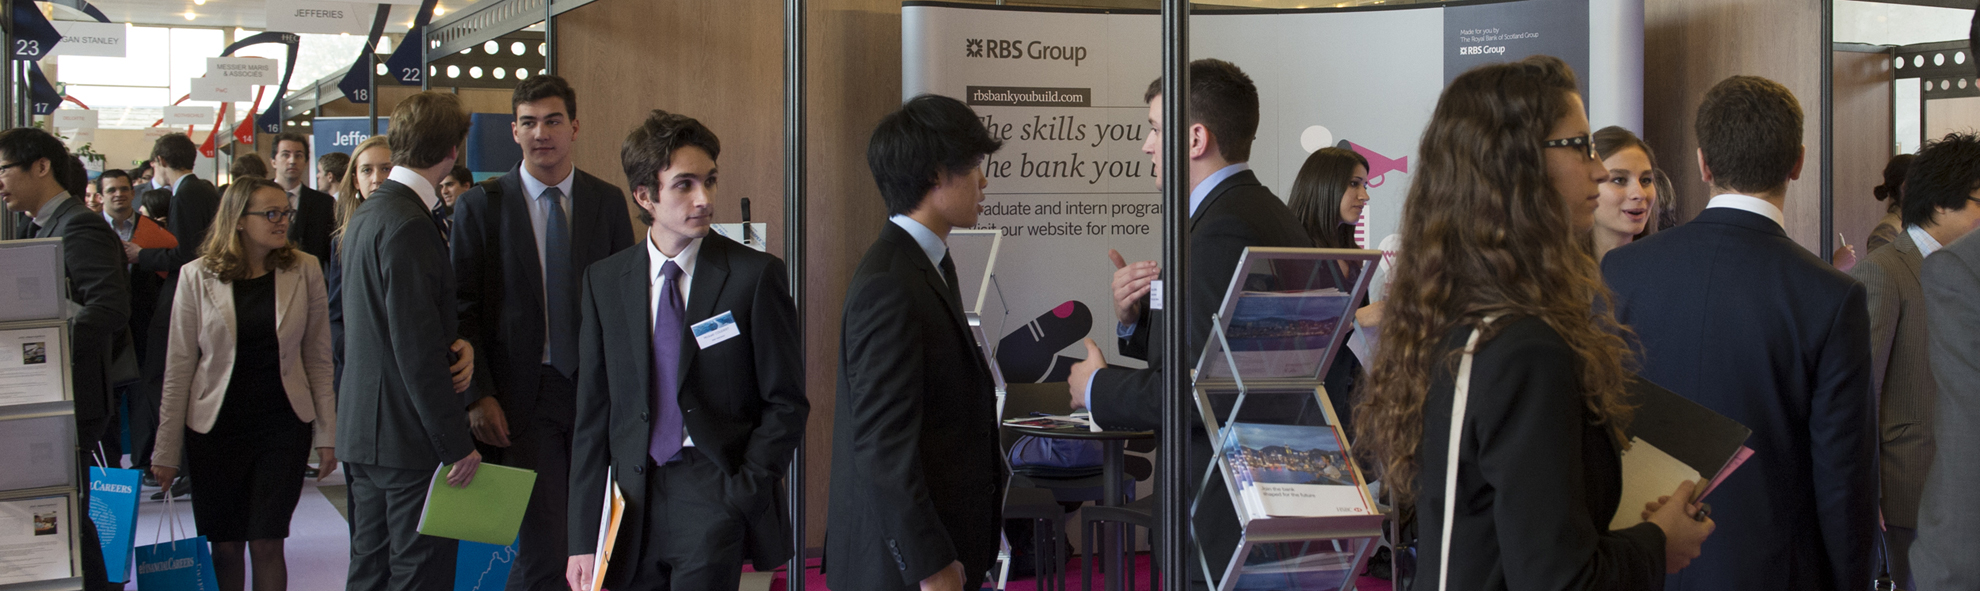 HEC Paris Career Fairs - Recruiters